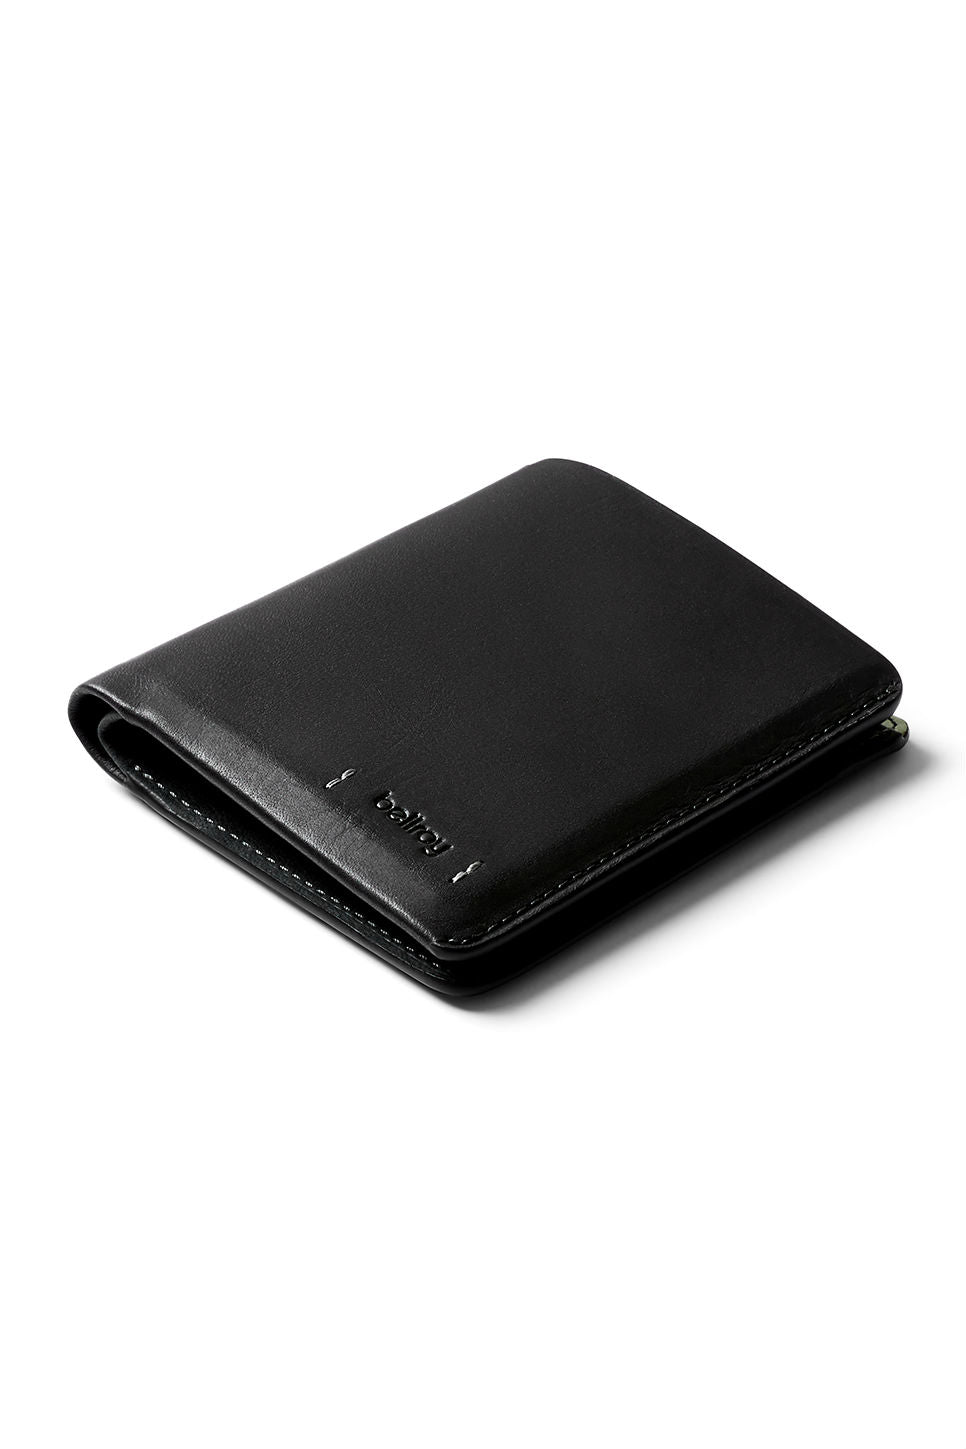 Bellroy - Note Sleeve Premium - Black